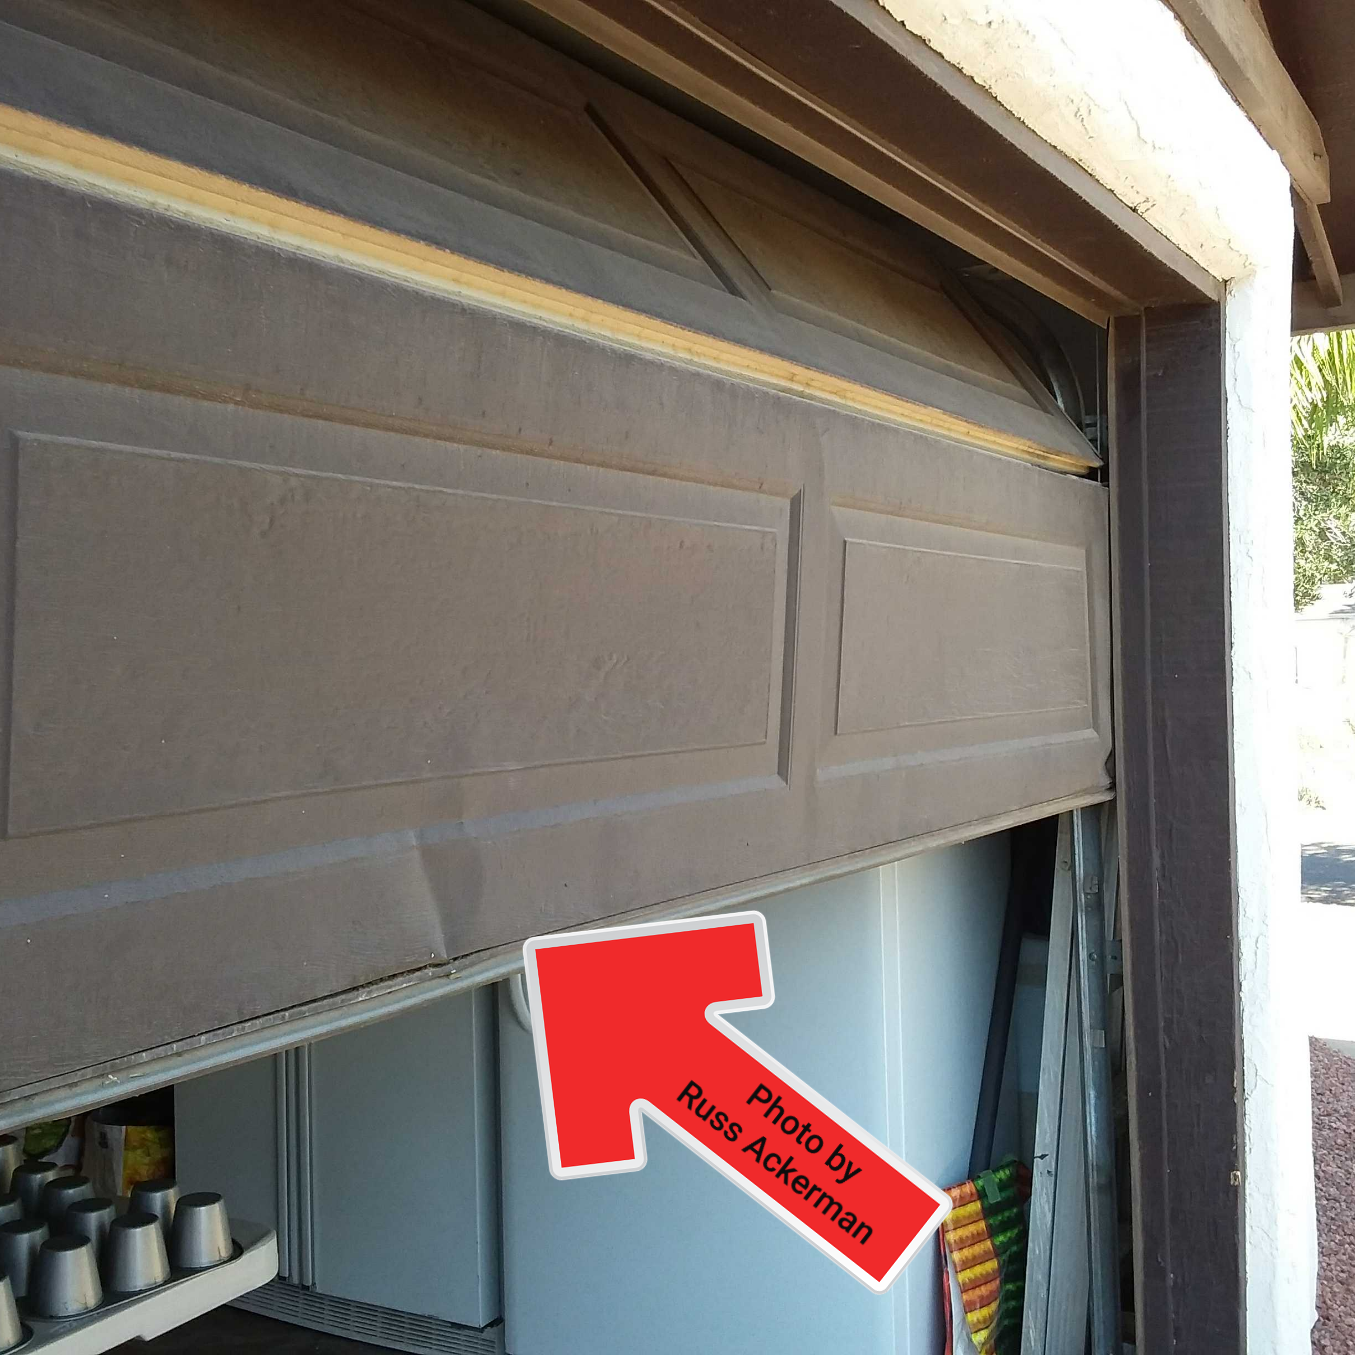 Bottom garage door panels often gets bumped by a car and usually does not hinder the operation of the door.